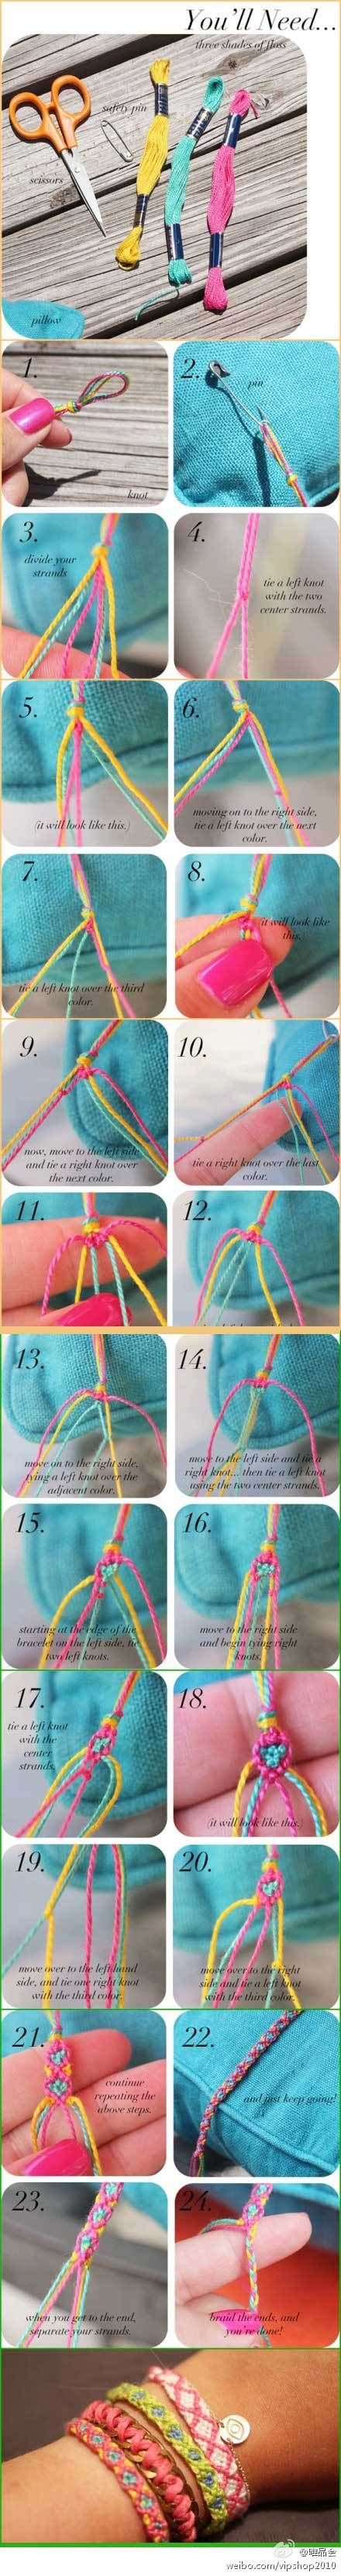 macrame bracelets.: Bracelets Tutorials, Friendship Bracelets Patterns, Macrame Bracelets, Diy Crafts, Friendship Braclets, Friendship Bracelets Tutorial, Cute Bracelets, Diy Bracelets, Floss Bracelets